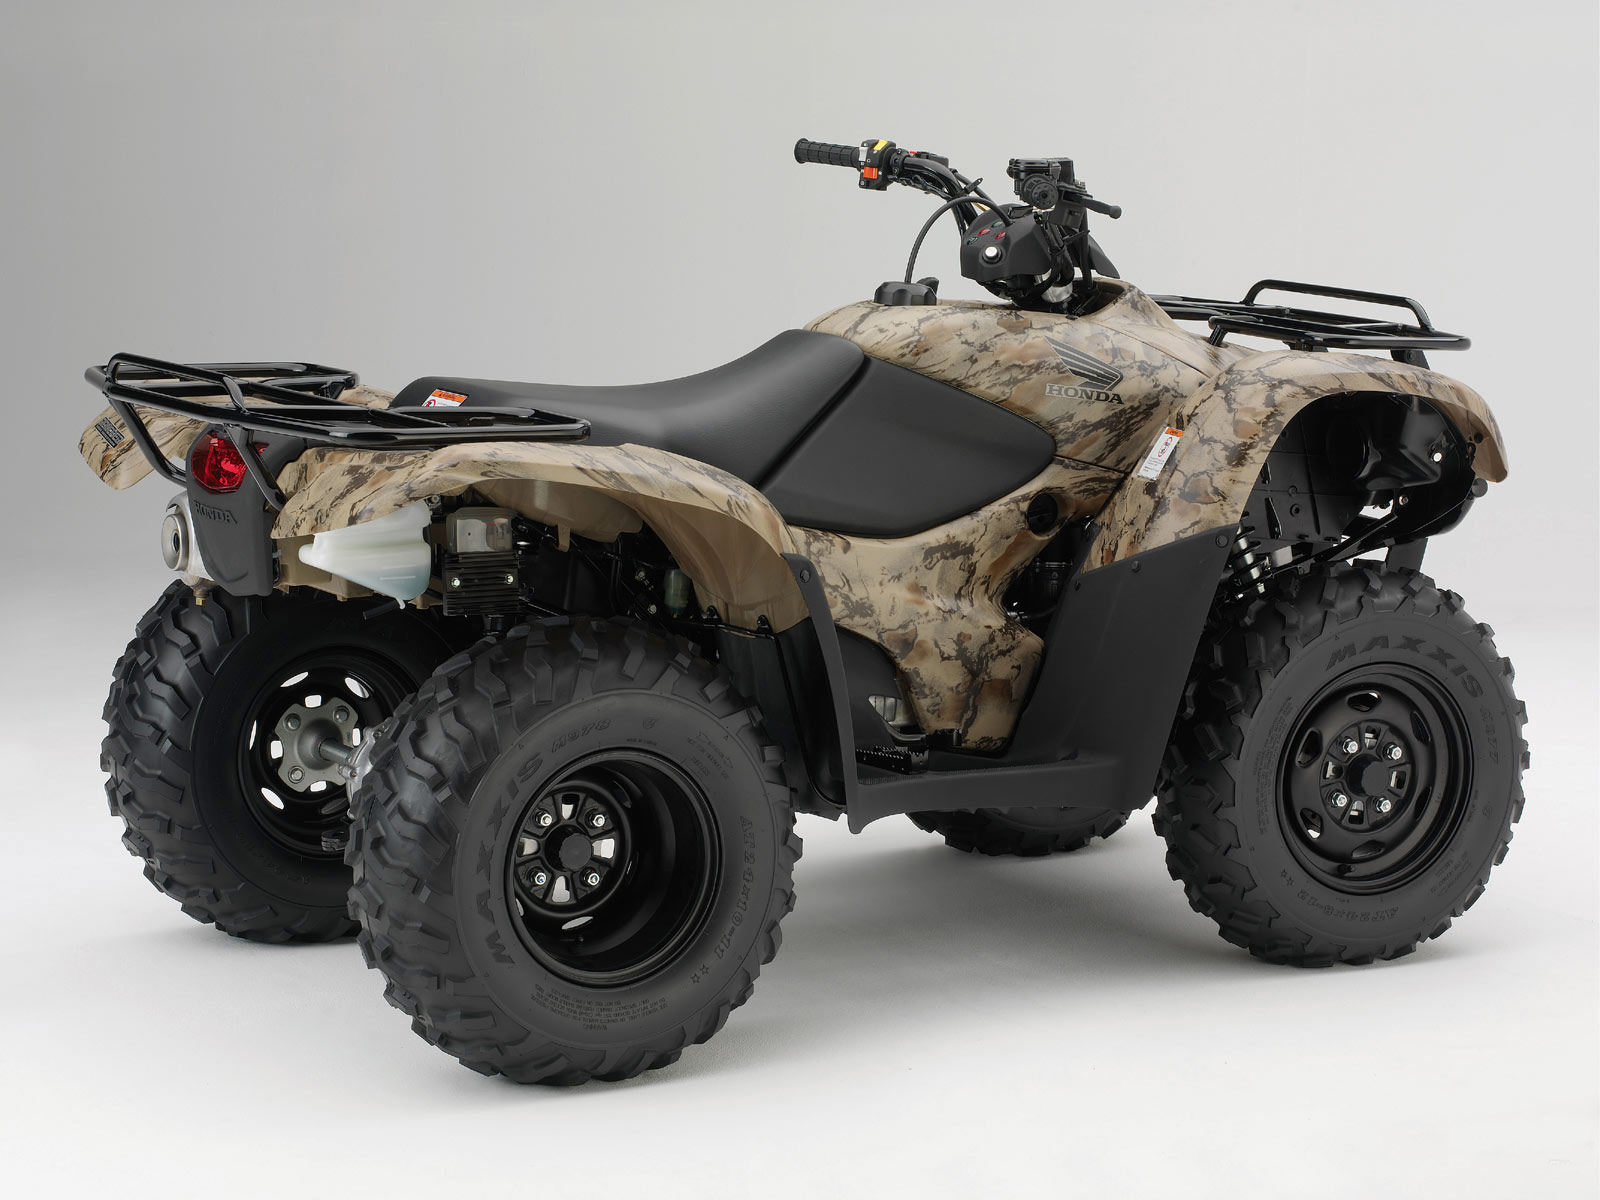 2007 HONDA FourTrax Rancher ATV pictures   accident lawyers